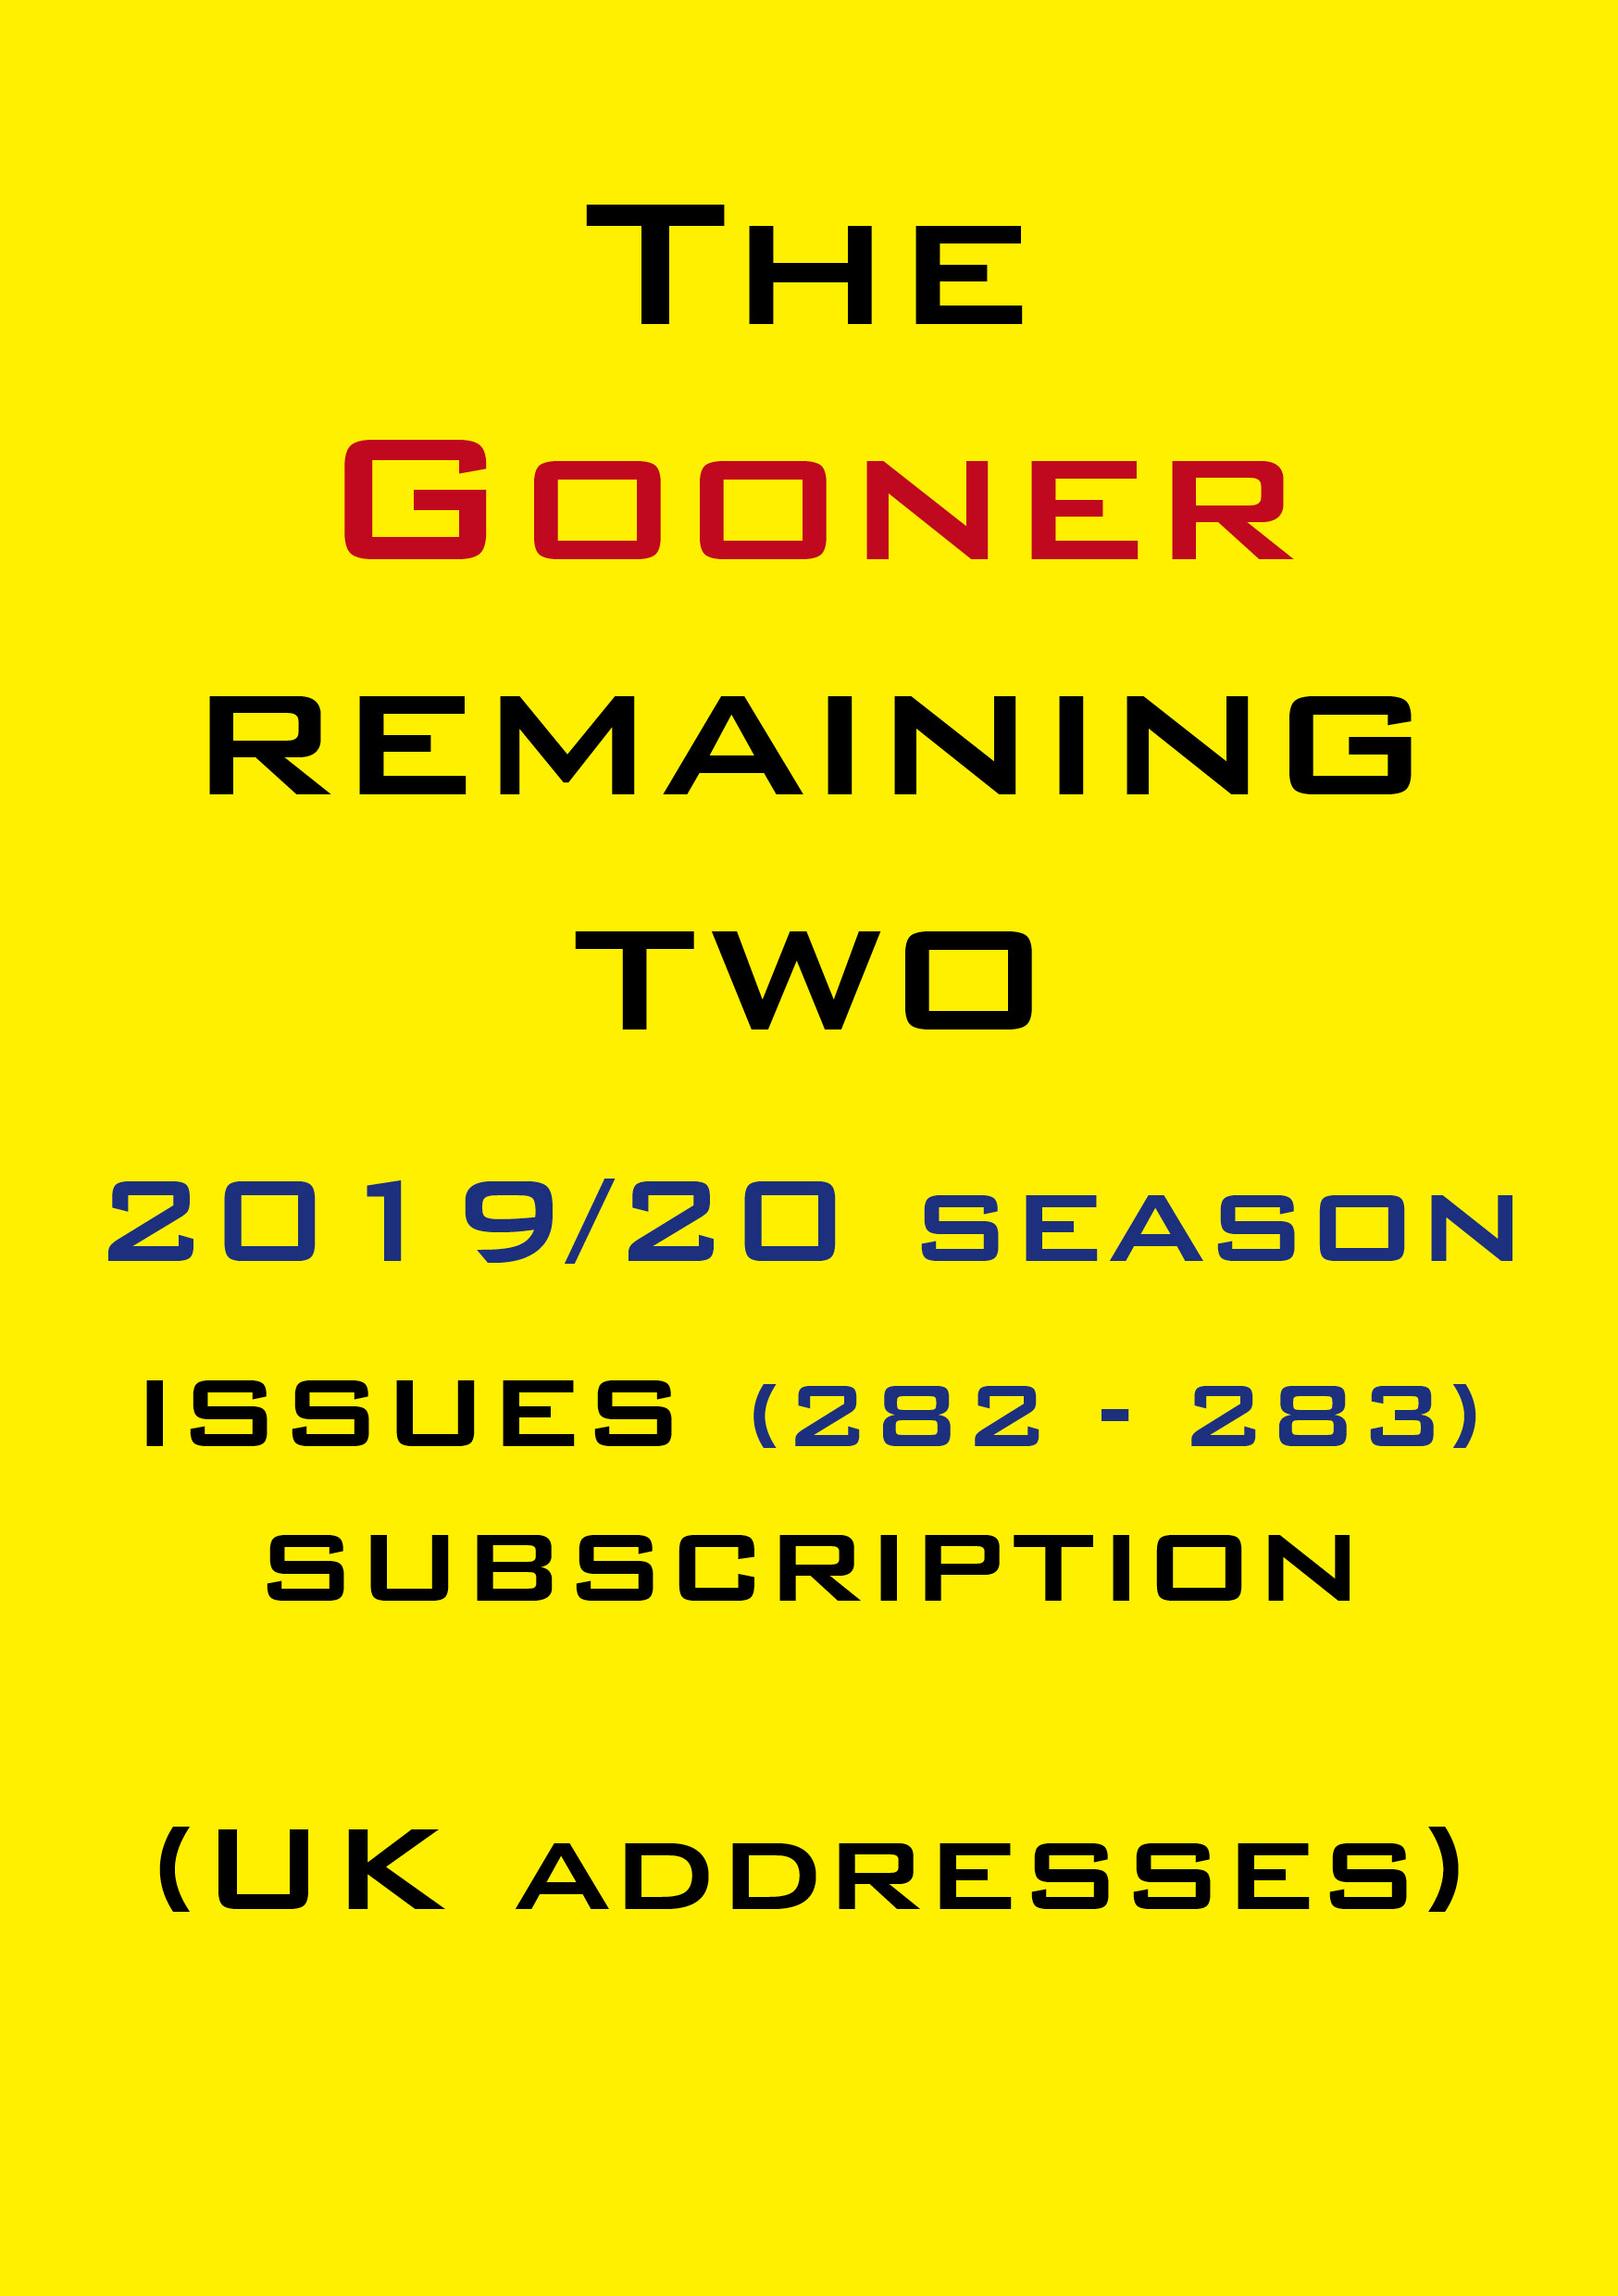 1g. The Gooner! - 2 remaining 2019/20 issues subscription UK